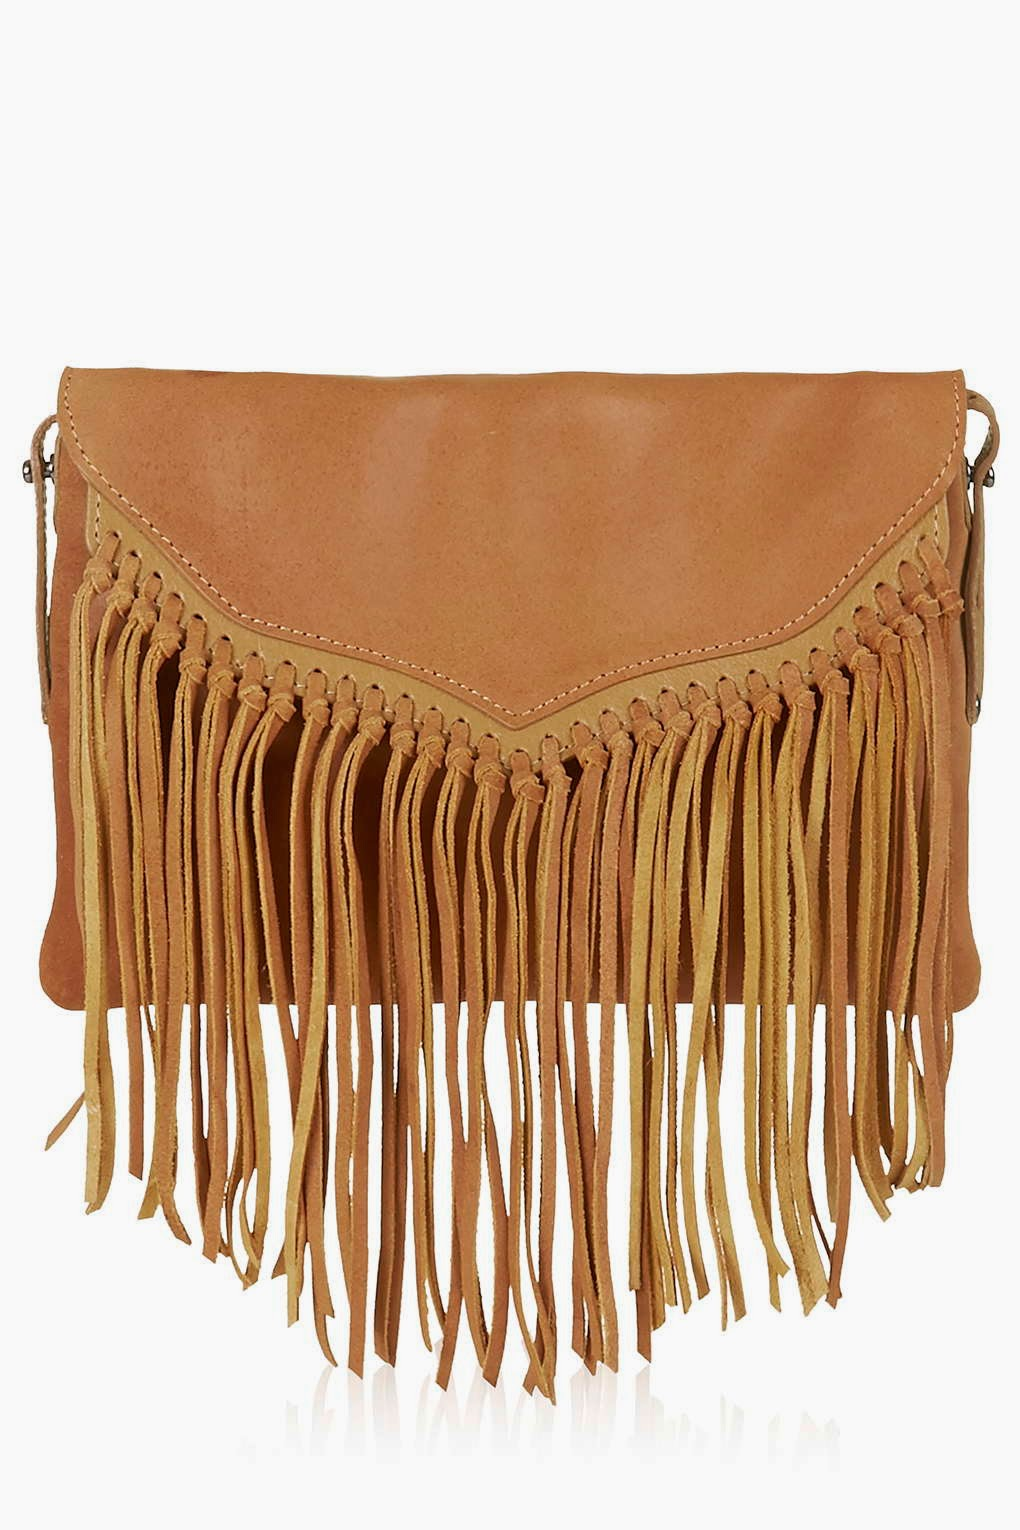 topshop tan tassel bag, tan tassel handbag, small fringed handbag, tan fringed topshop bag,